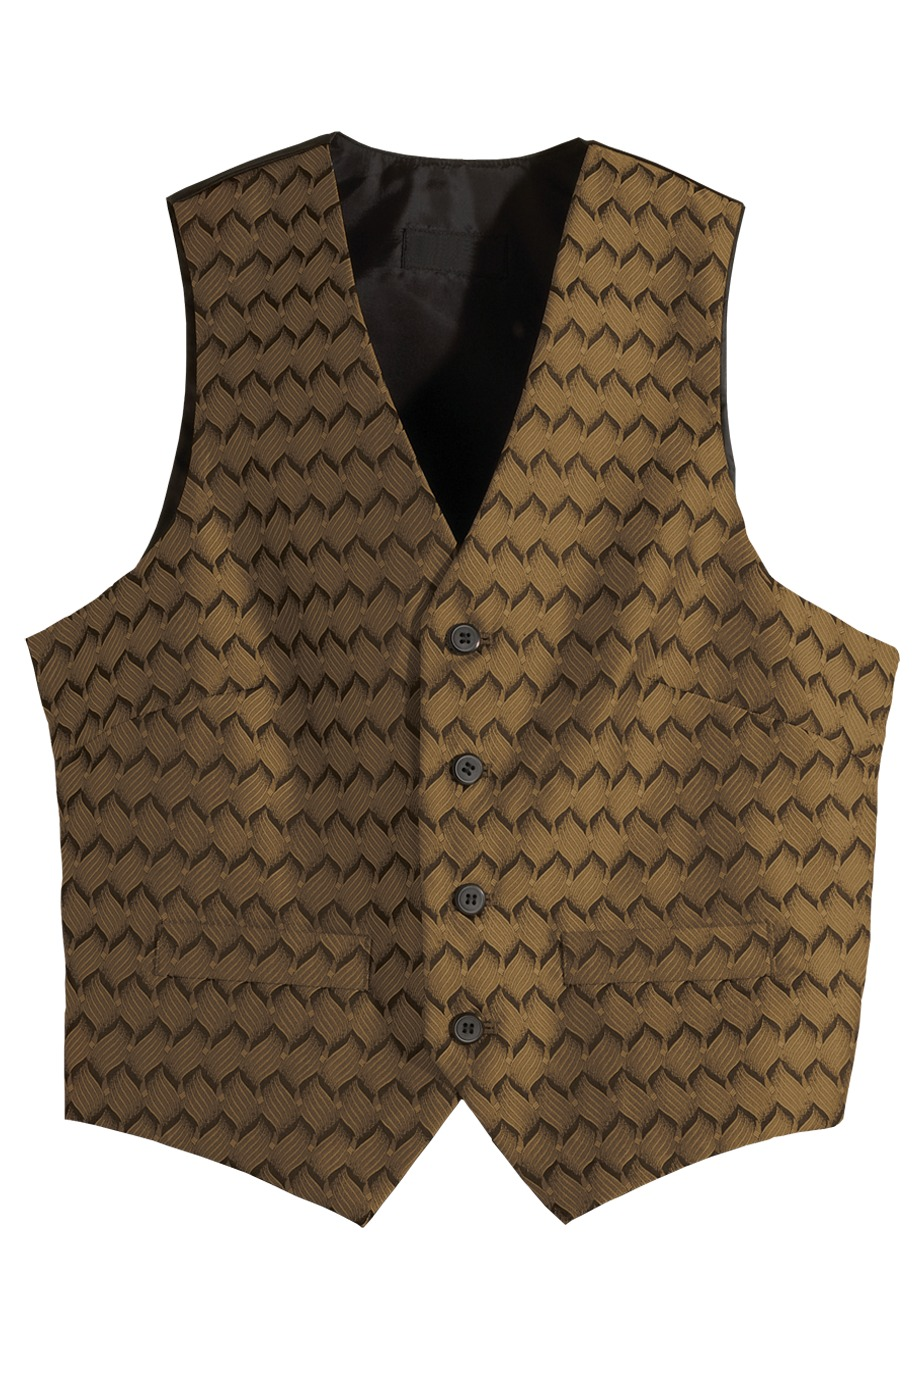 Edwards Garment 4391 - Men's Swirl Brocade Vest